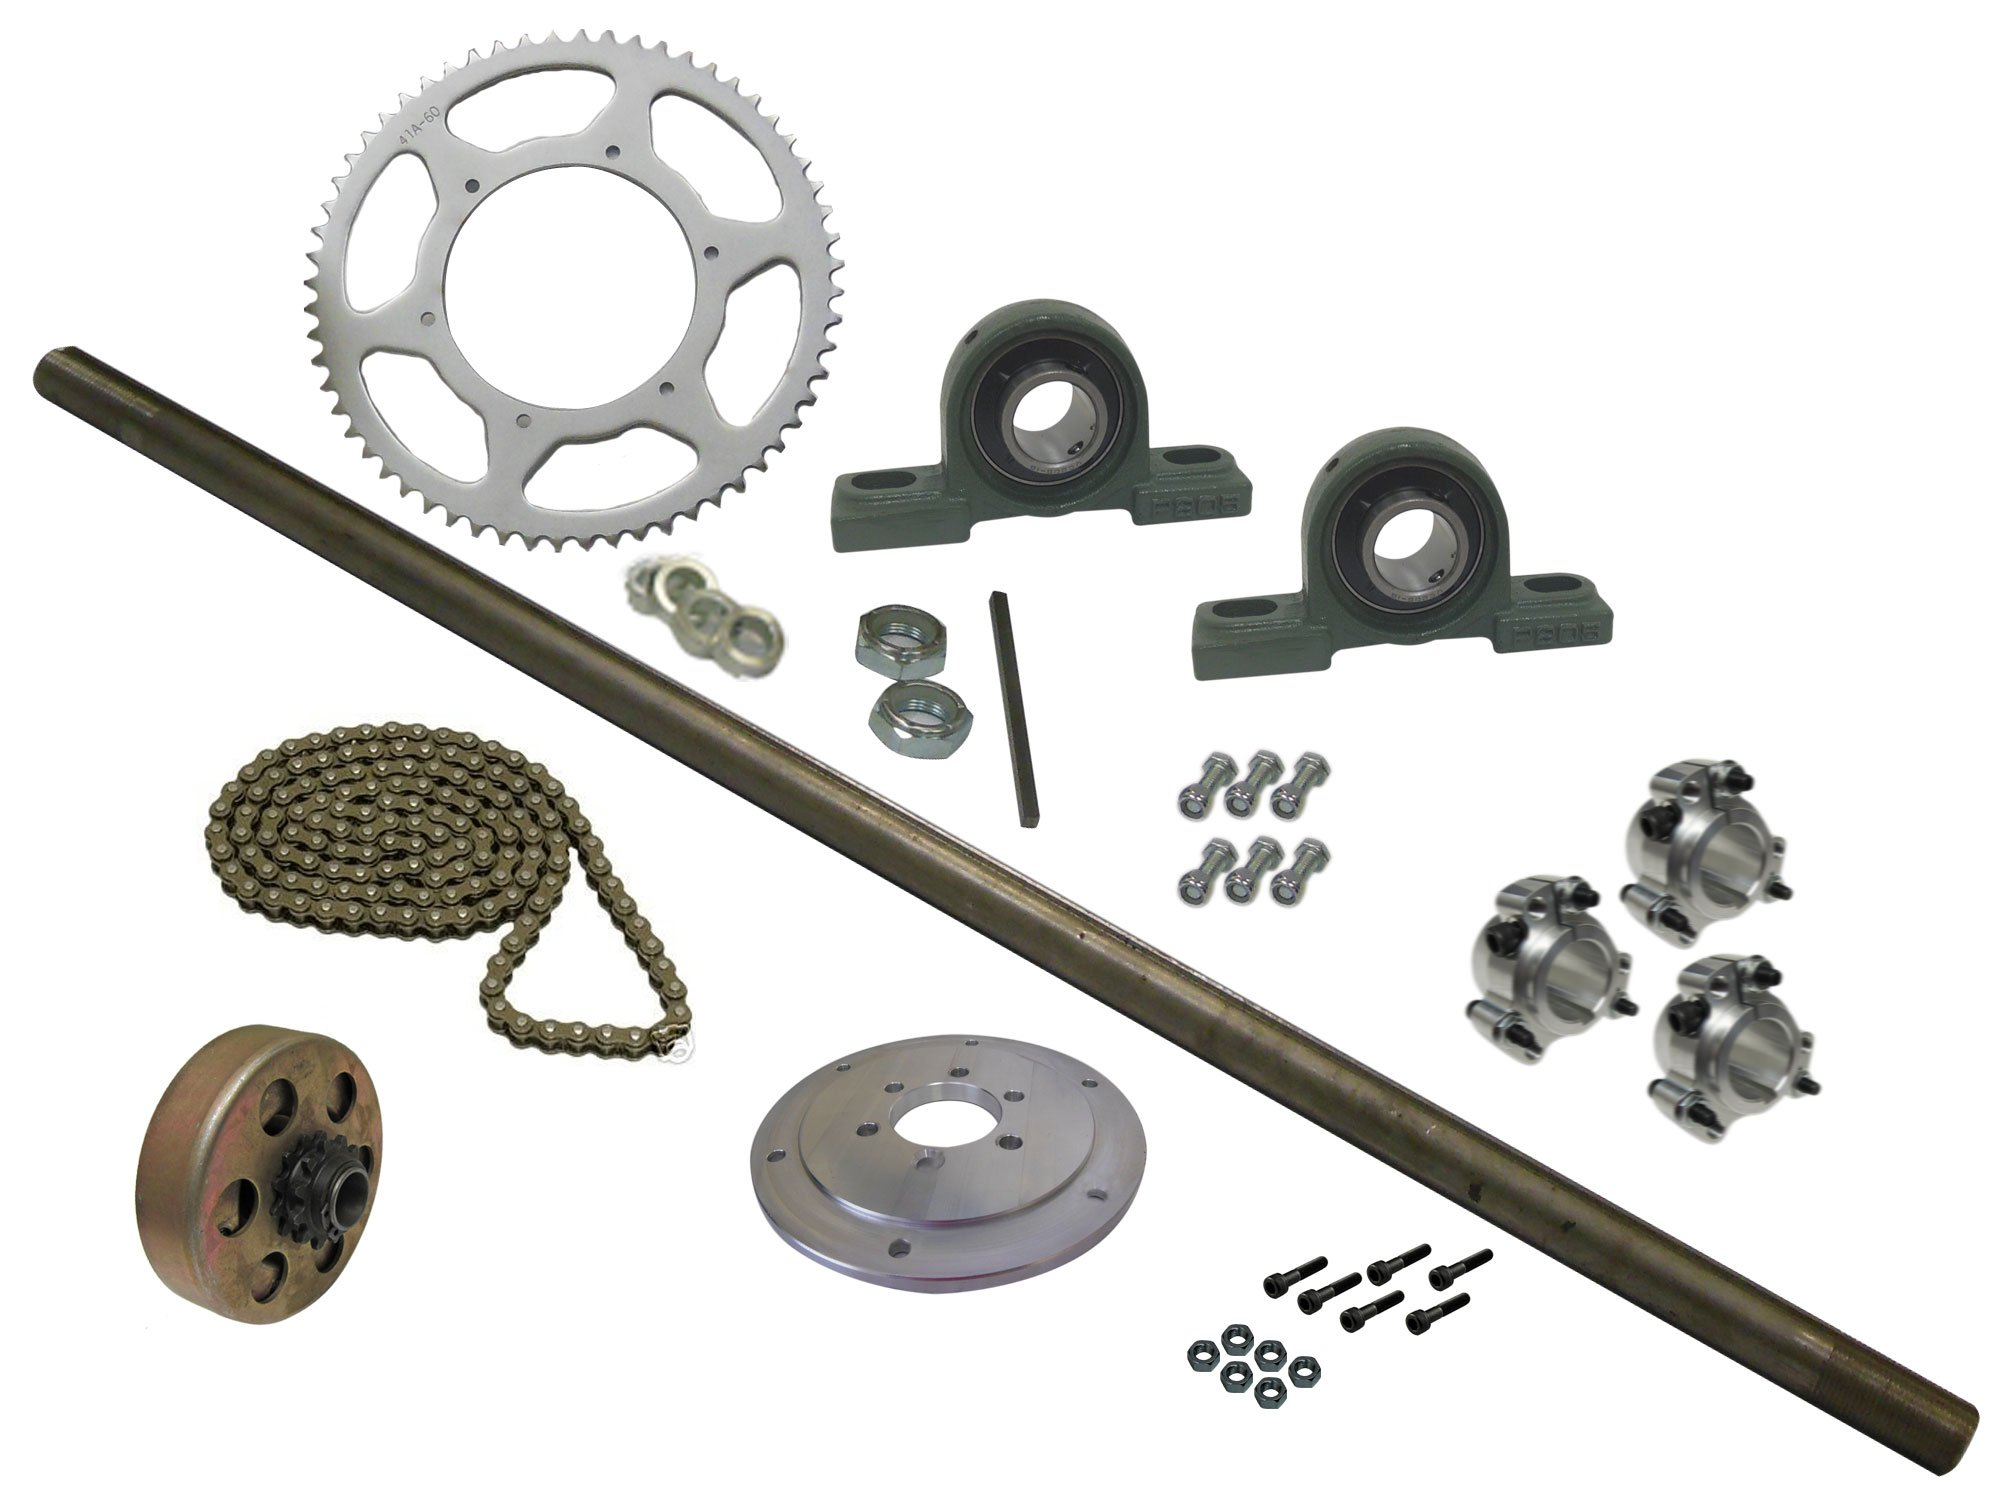 BMI Karts Drift Trike Axle Kit with Clutch, Pillow Block Bearings (#40 Chain), 40'' Axle